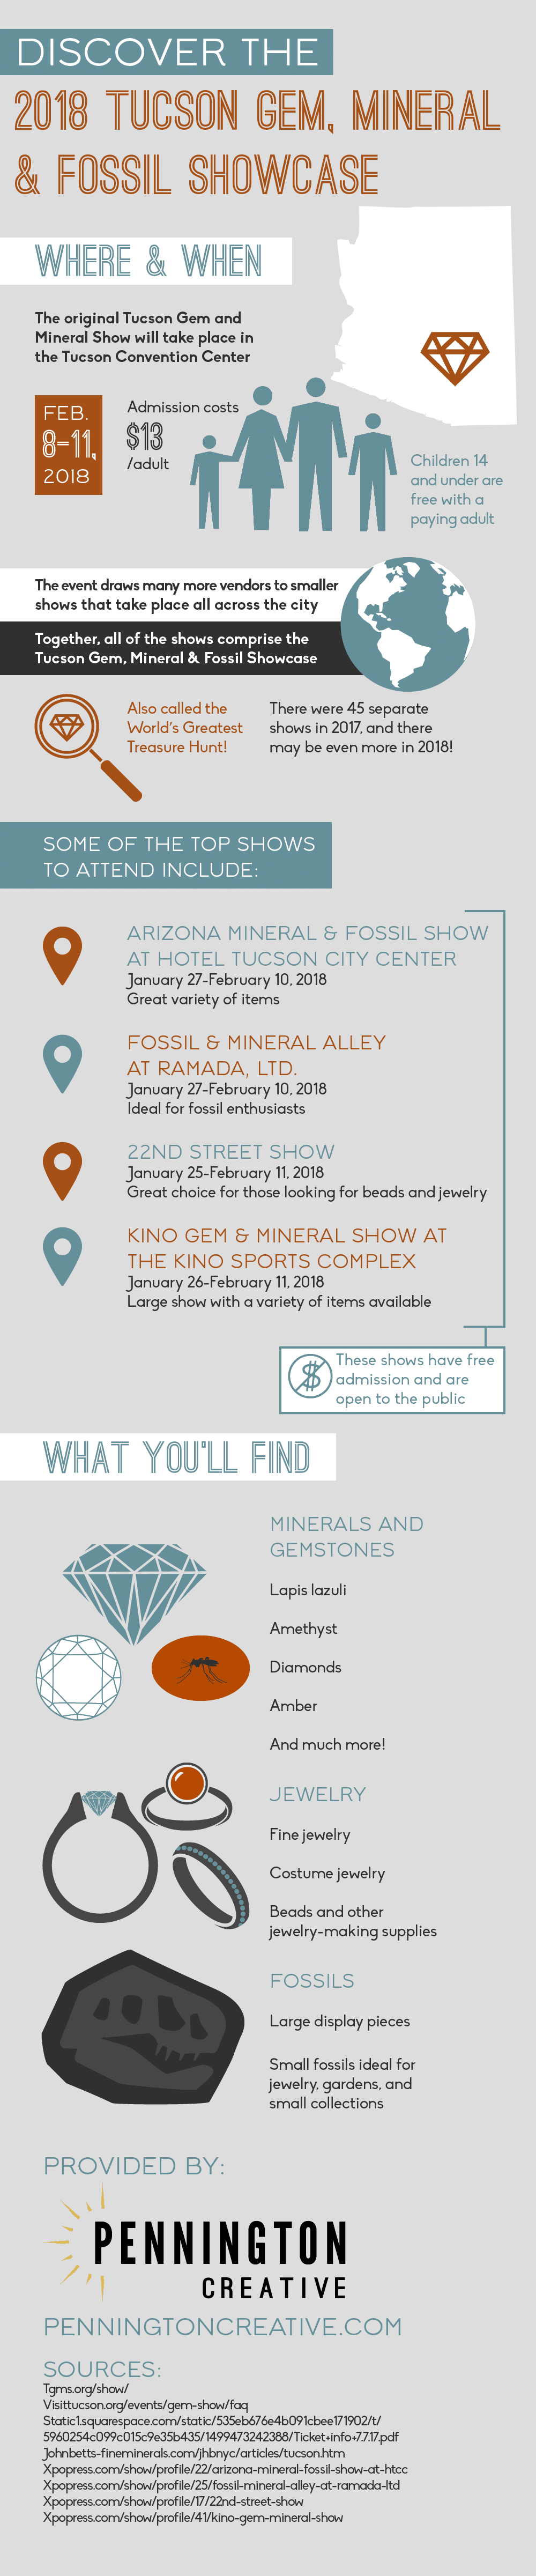 Infographic about the 2018 Tucson Gem, Mineral & Fossil Showcase.